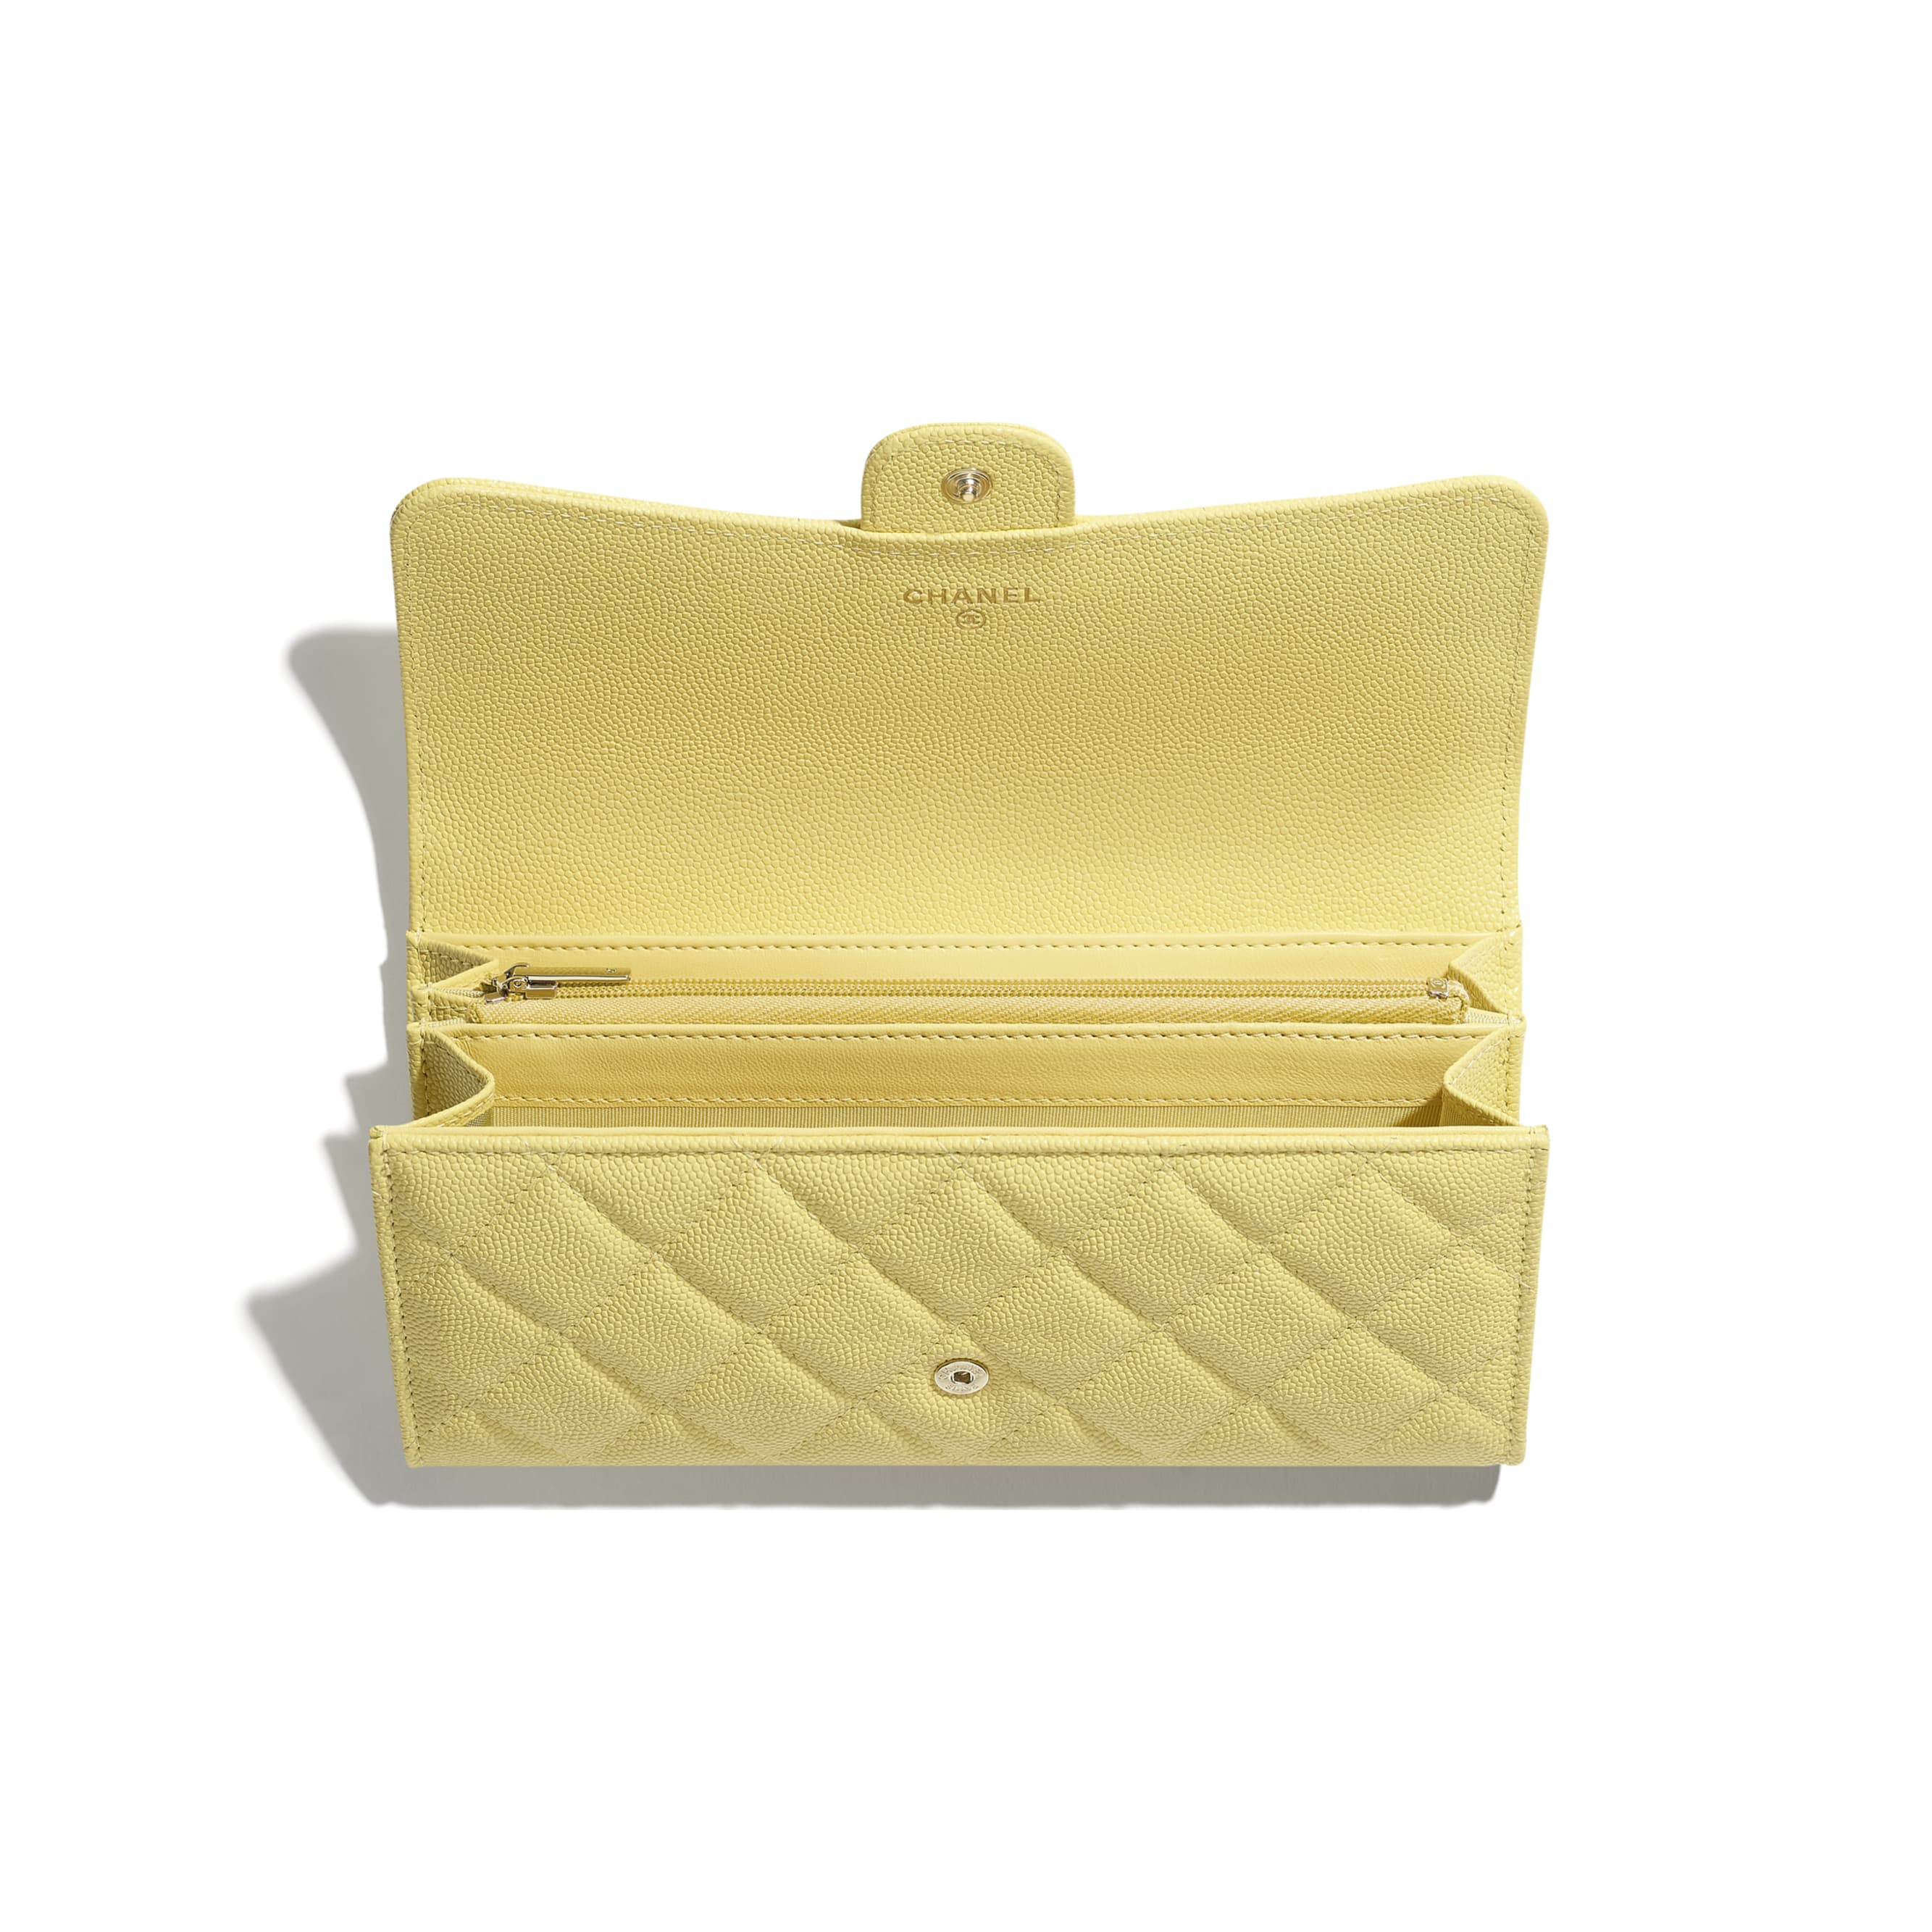 Classic Long Flap Wallet - Yellow - Grained Calfskin & Gold-Tone Metal - CHANEL - Alternative view - see standard sized version